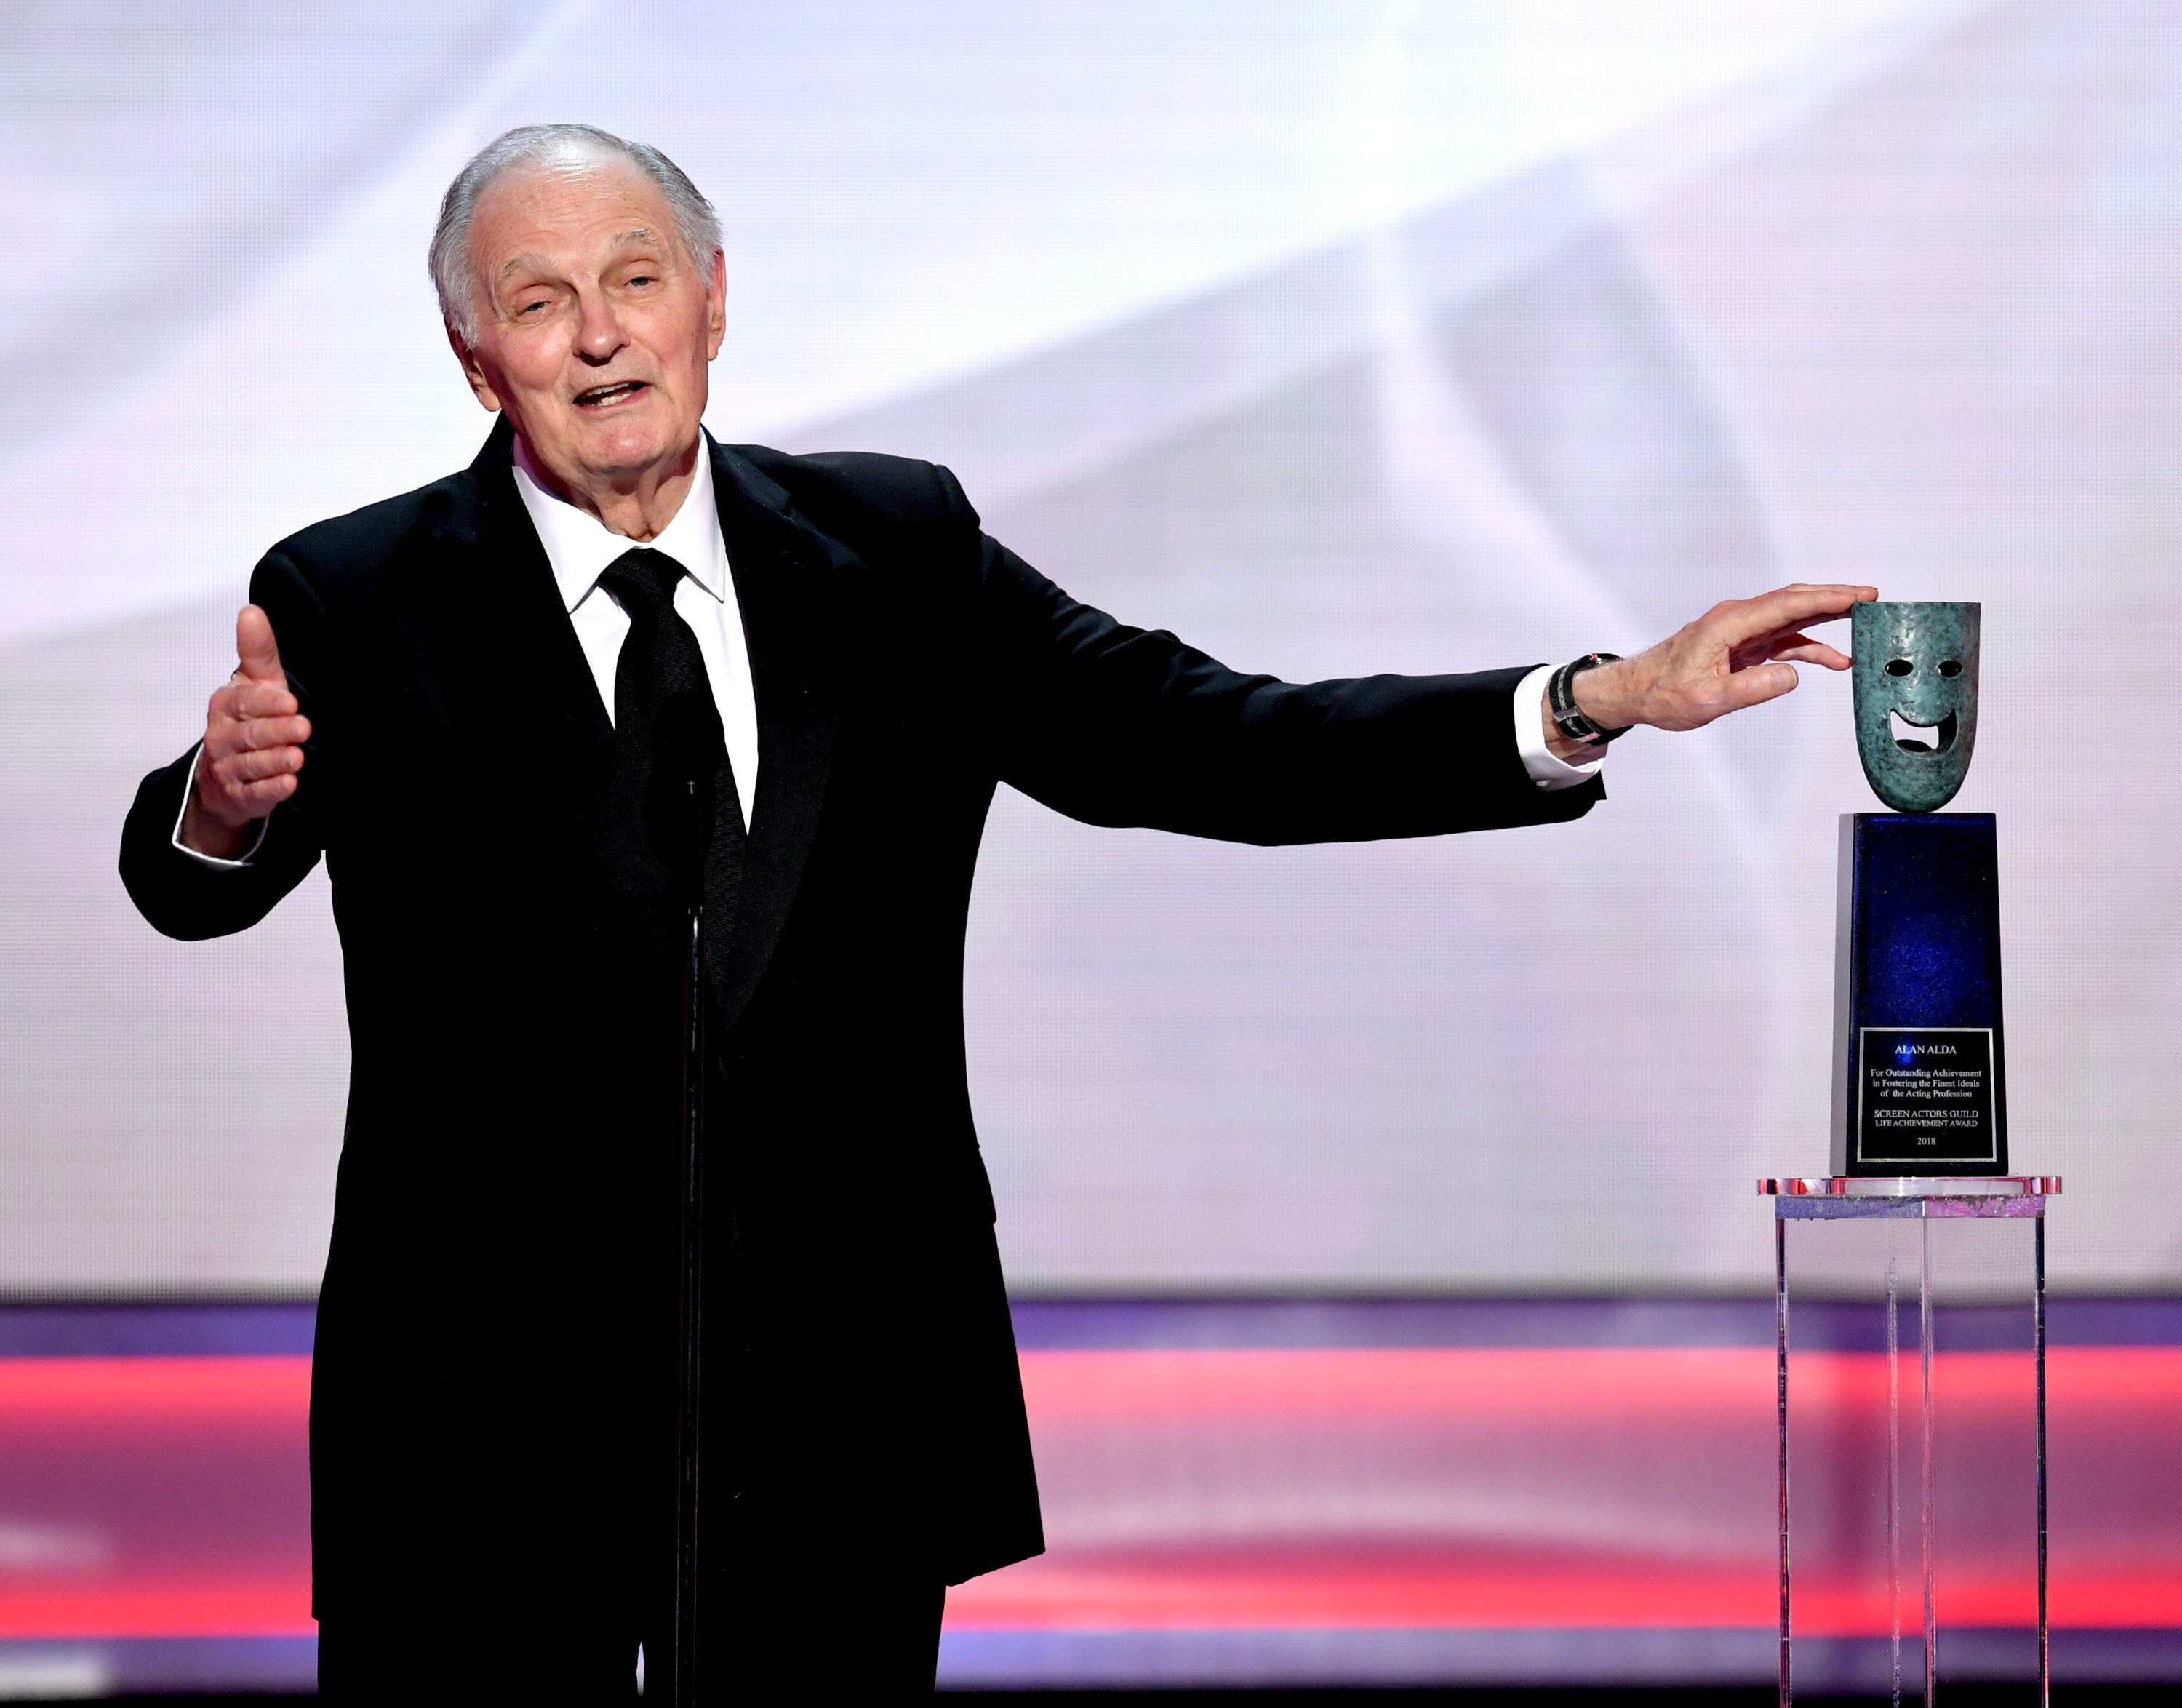 LOS ANGELES, CALIFORNIA - JANUARY 27: Alan Alda receives the SAG Life Achievemant Award onstage during the 25th Annual Screen Actors Guild Awards at The Shrine Auditorium on January 27, 2019 in Los Angeles, California. (Photo by Kevin Winter/Getty Images for Turner)